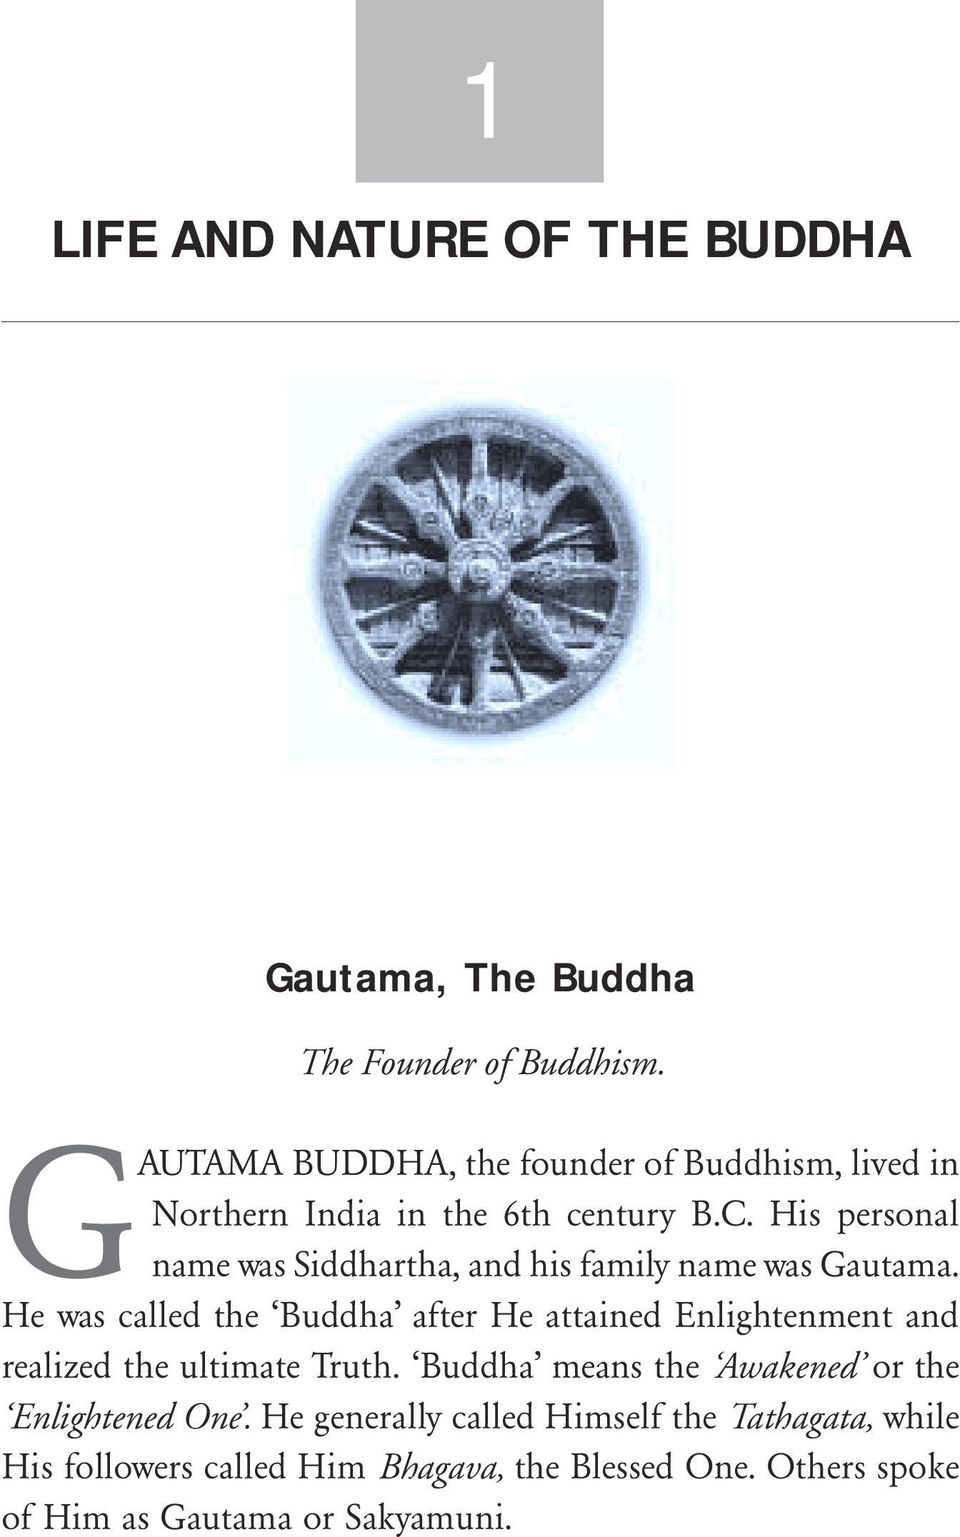 His personal name was Siddhartha, and his family name was Gautama.